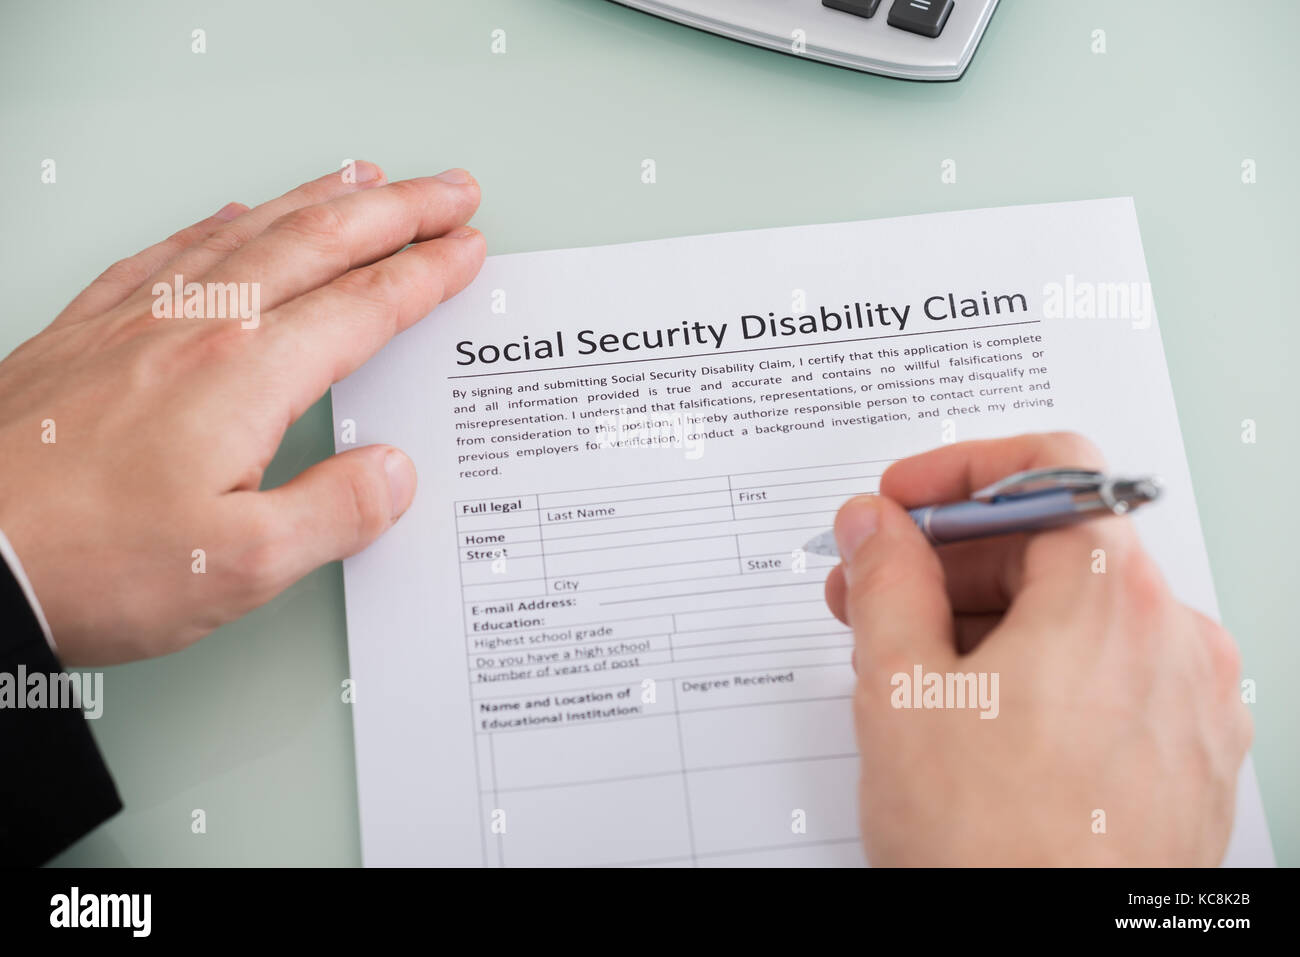 Close Up Of Person Hand Over Social Security Disability Claim Form